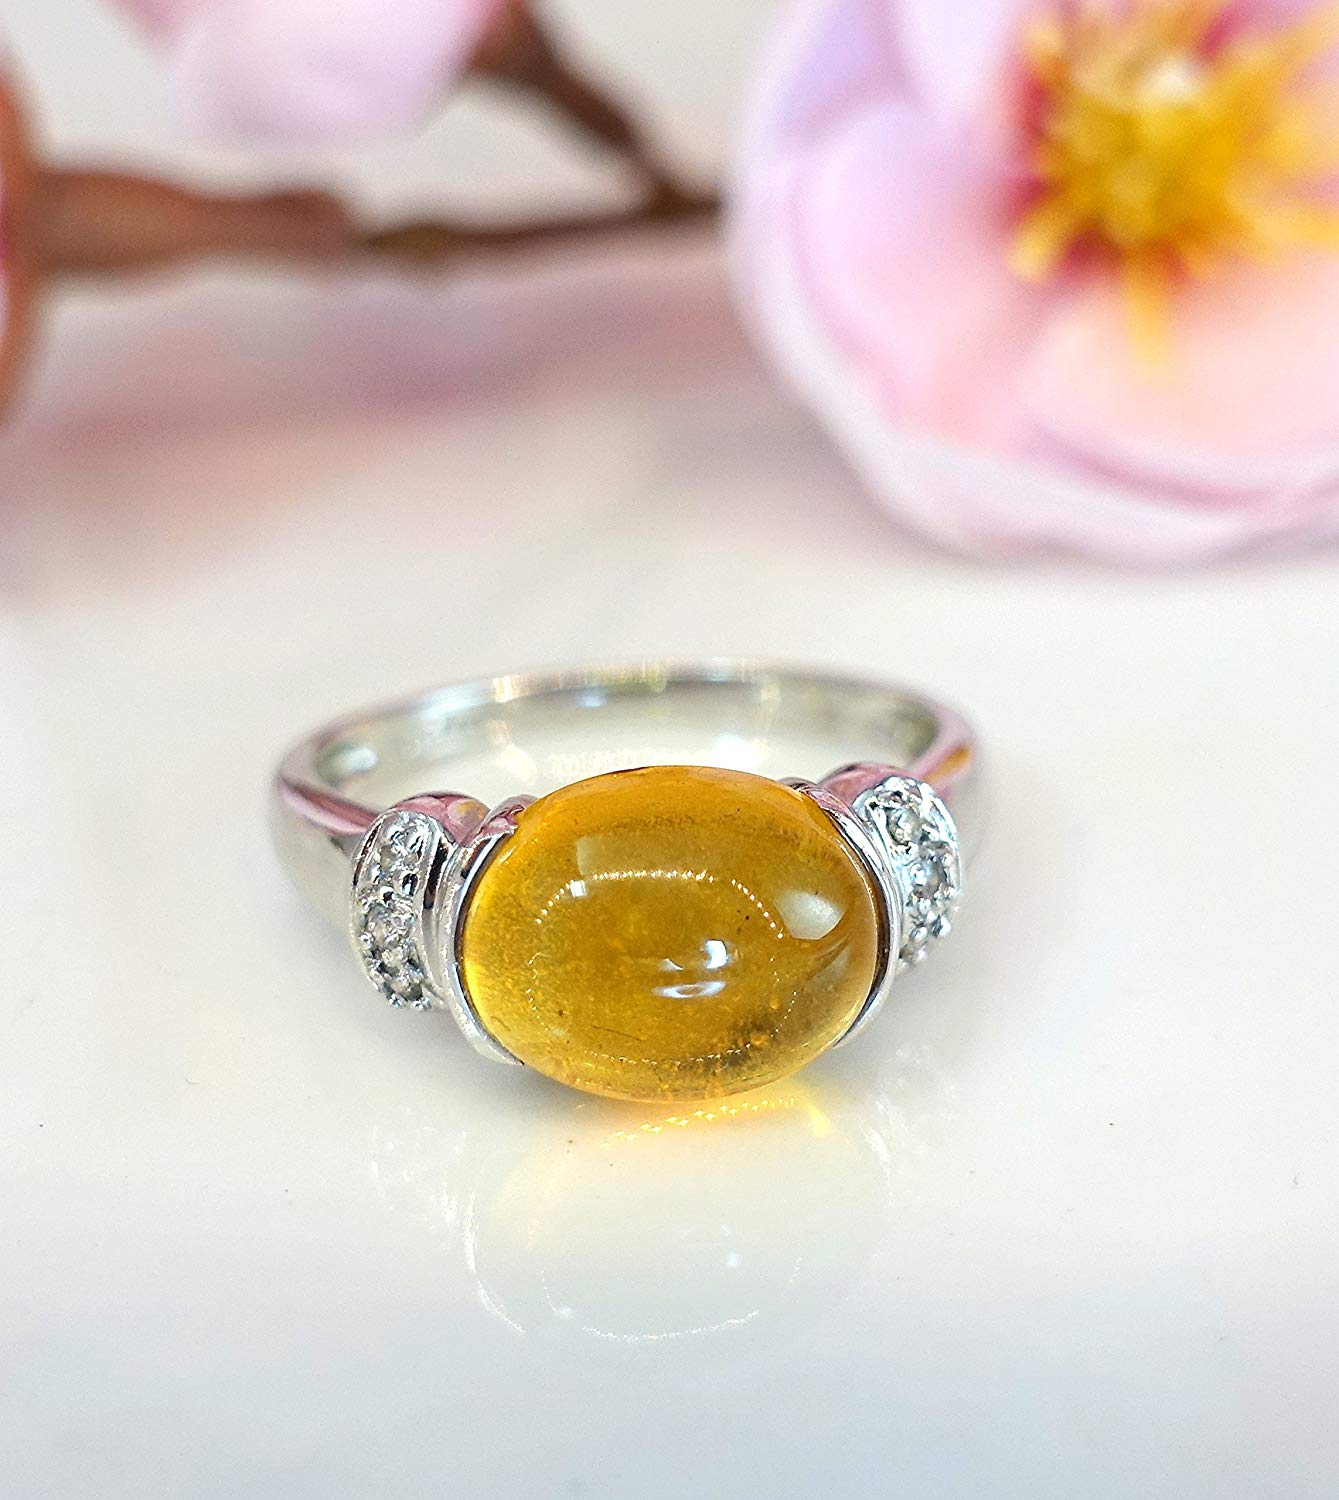 18k white gold diamond citrine oval ring size 7, genuine diamond ring, citrine genuine gemstone ring, wedding engagement ring, anniversary ring gift for wife